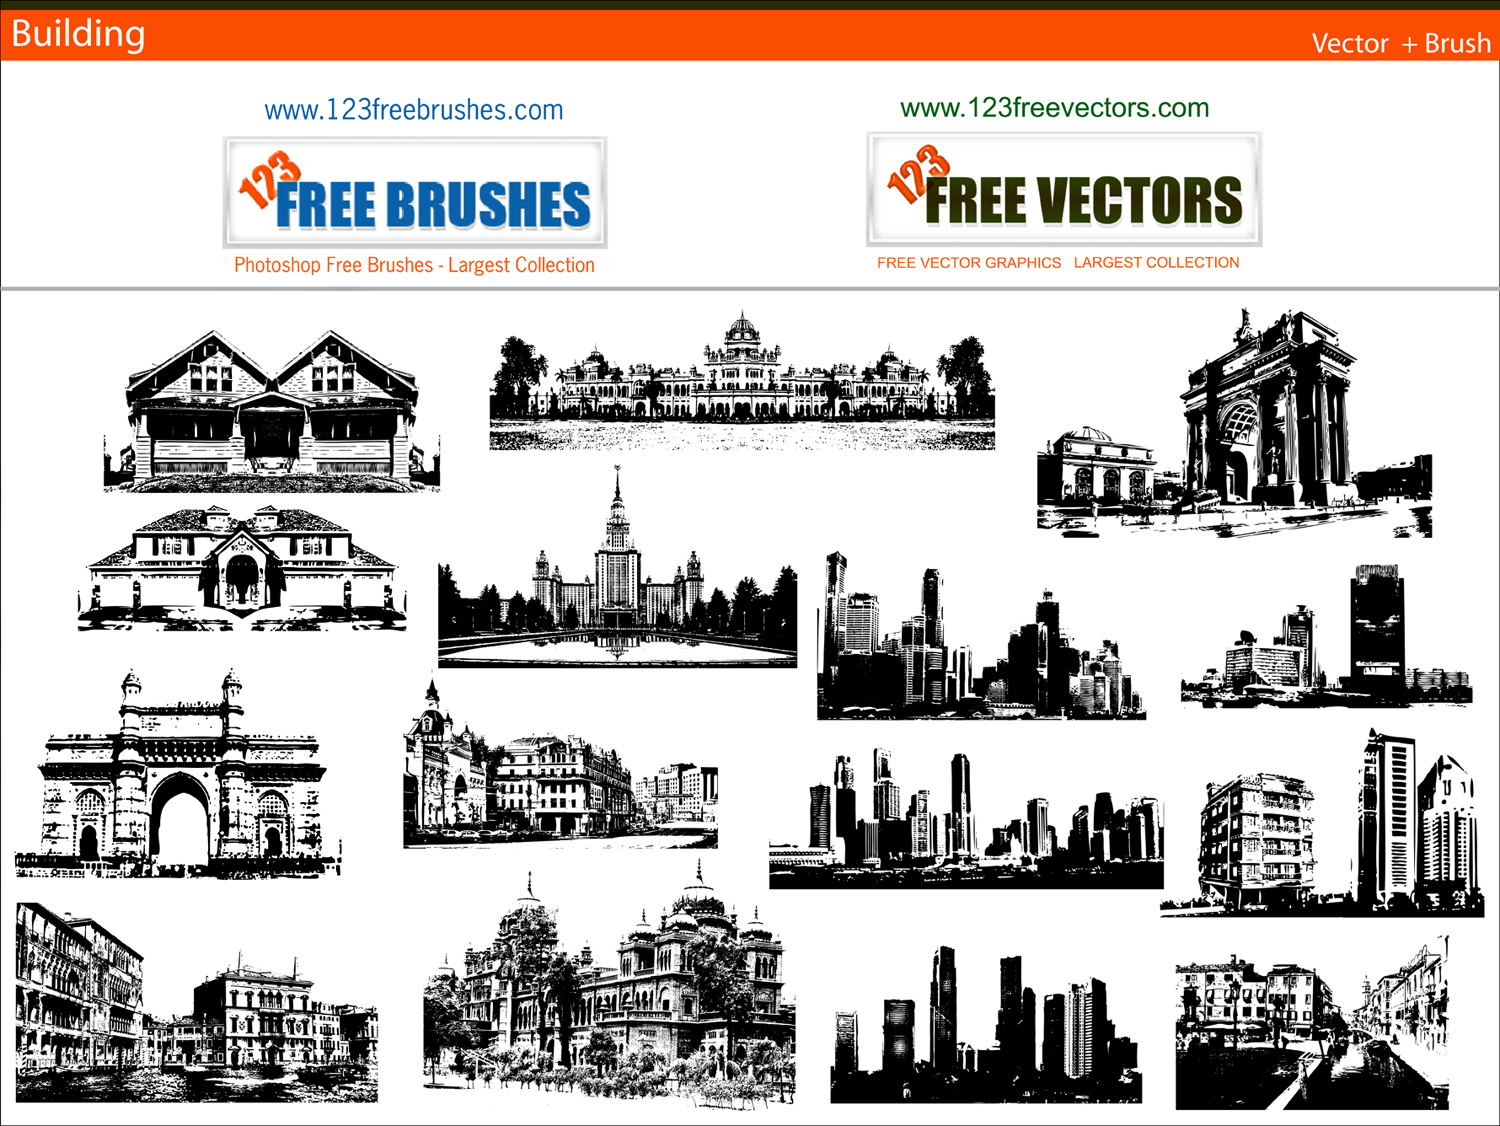 11 Free Vector Buildings Images